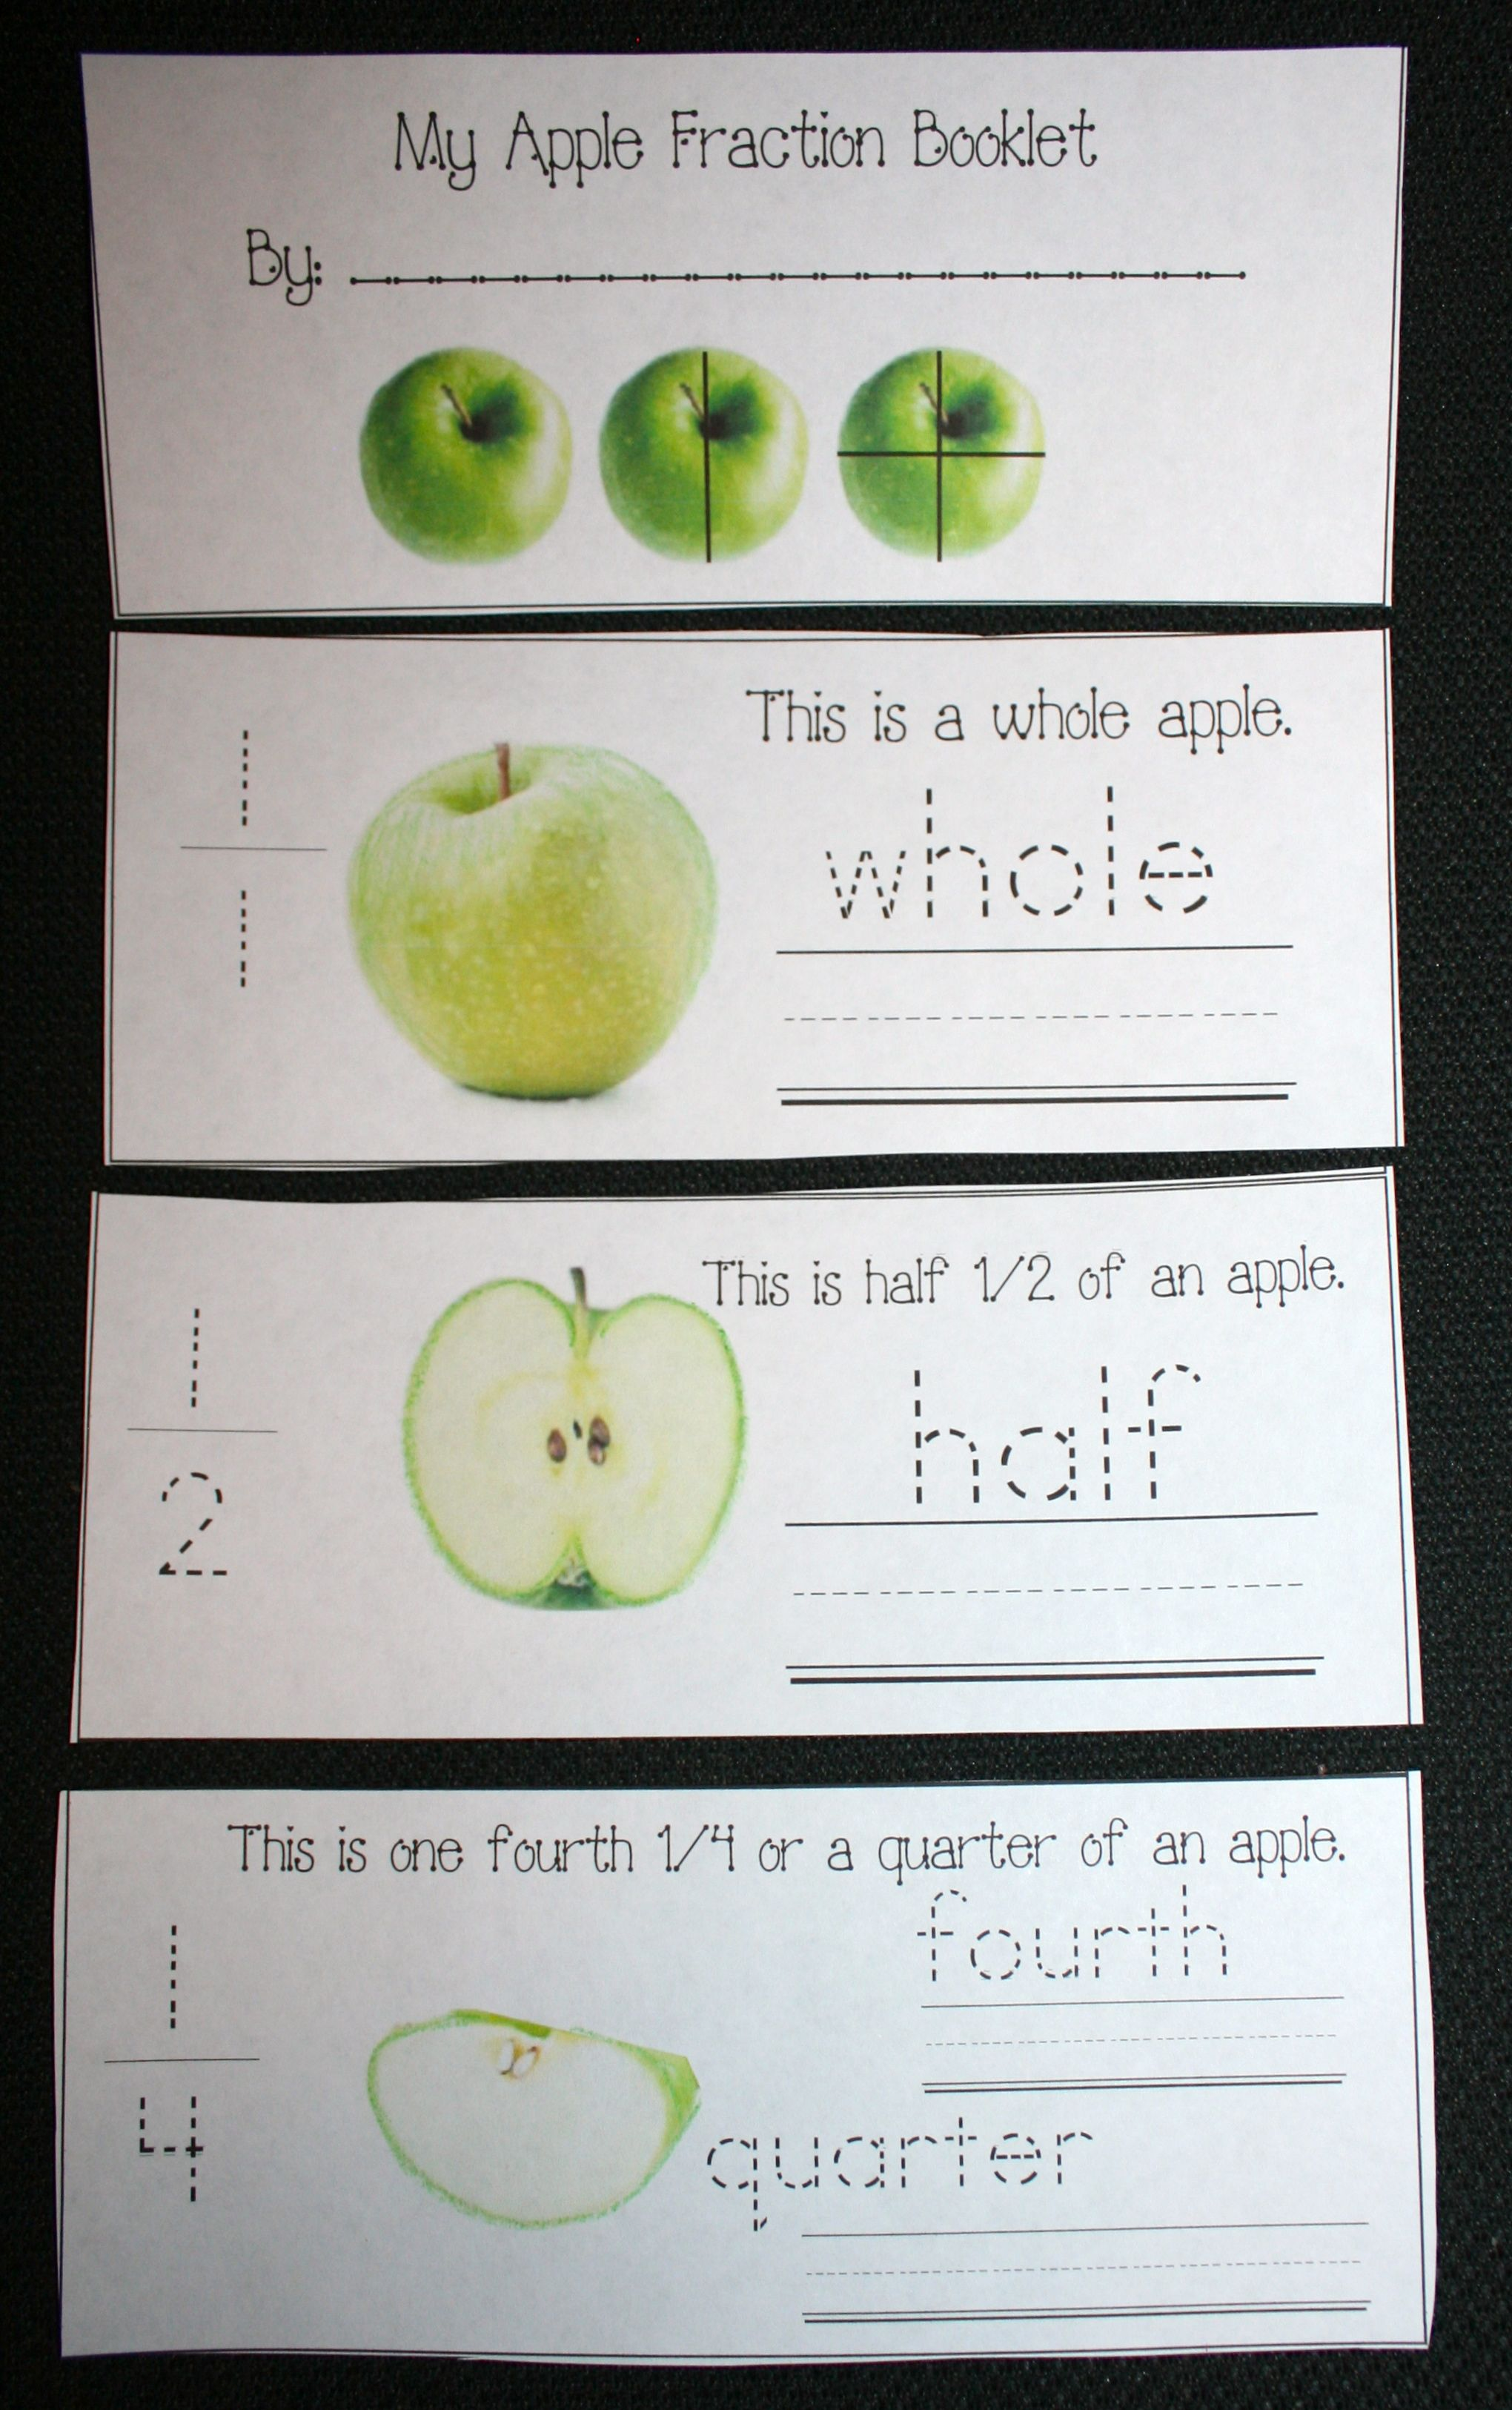 Studying Fractions Using Apples